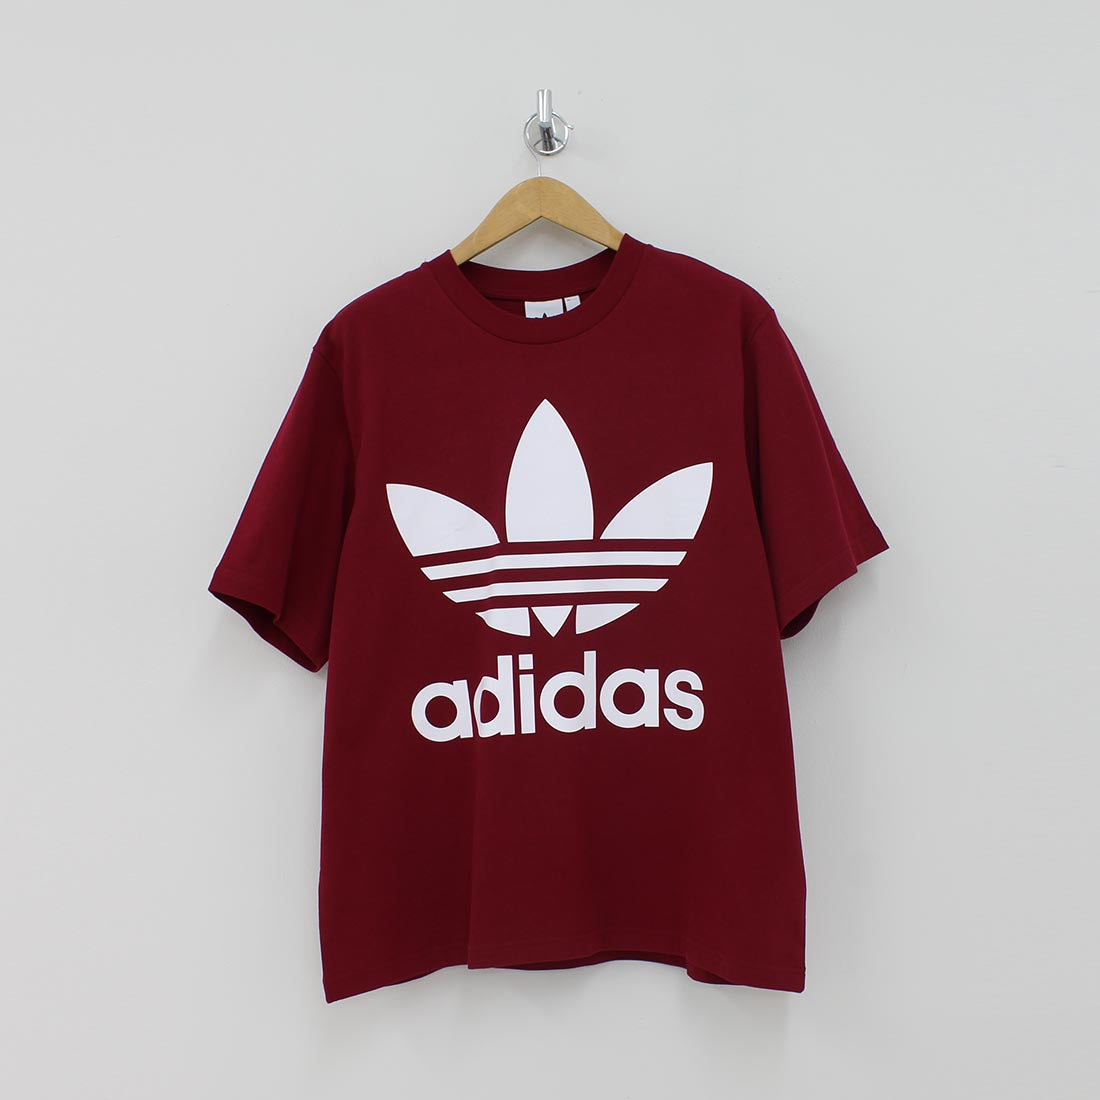 Adidas Originals Oversized T-Shirt Burgundy